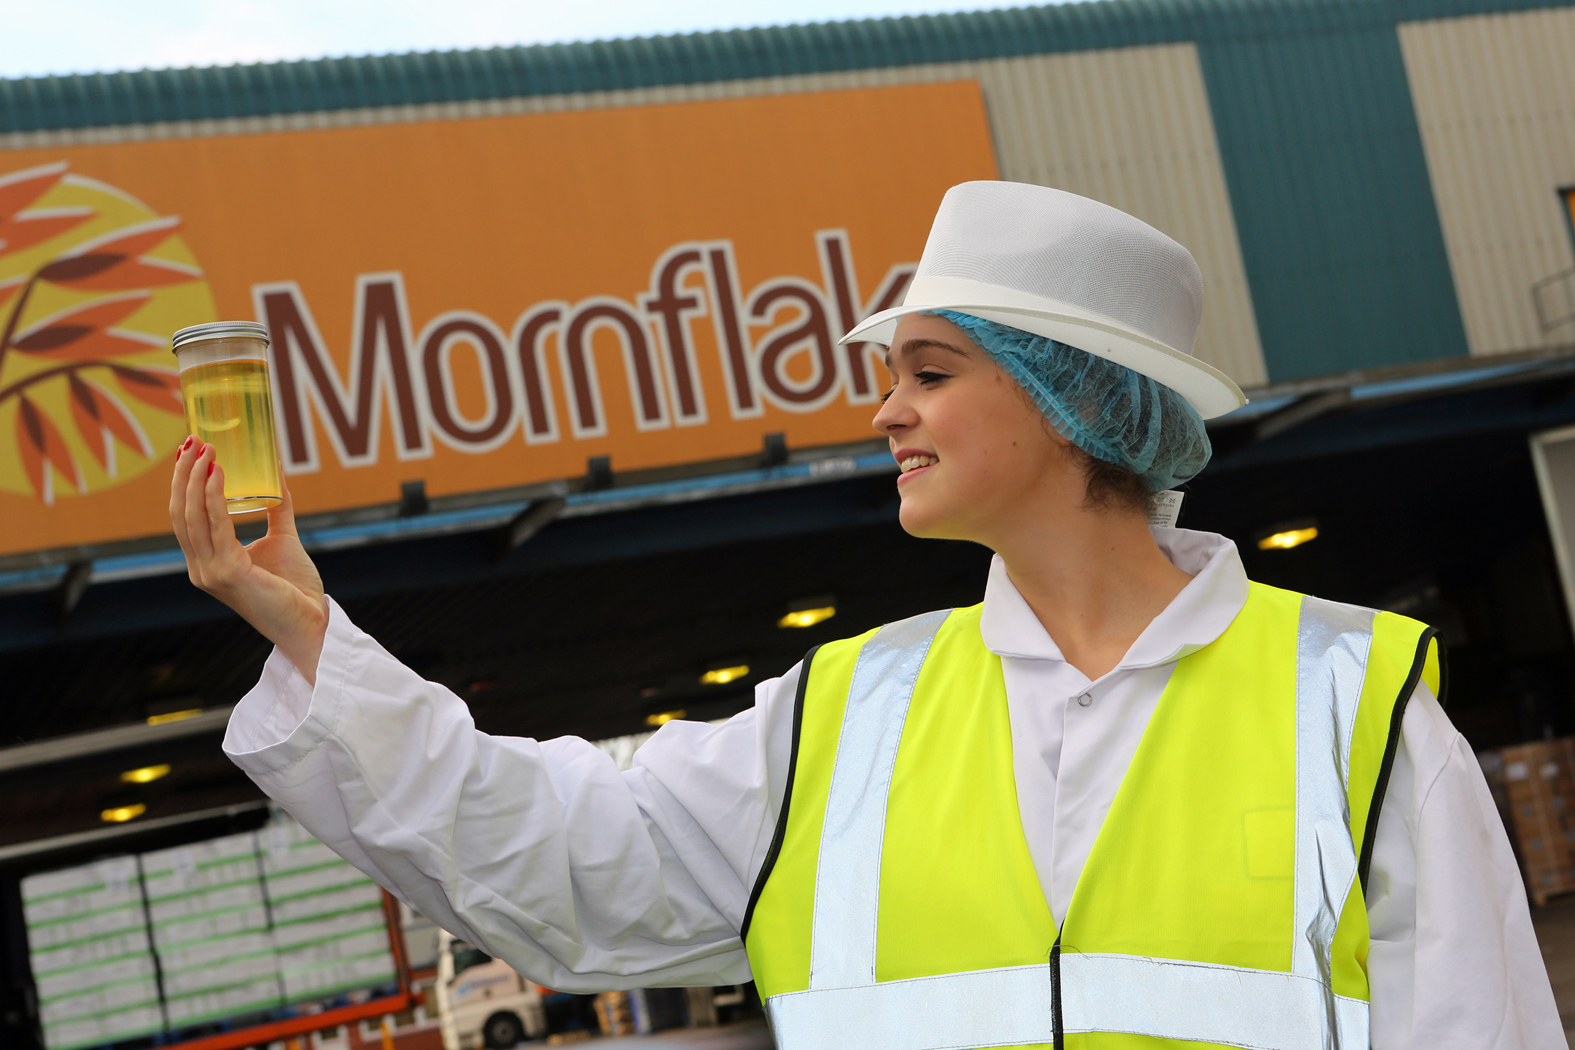 Catherine Sadler examines a sample of sustainable palm oil following a shipment to Mornflake in Crewe